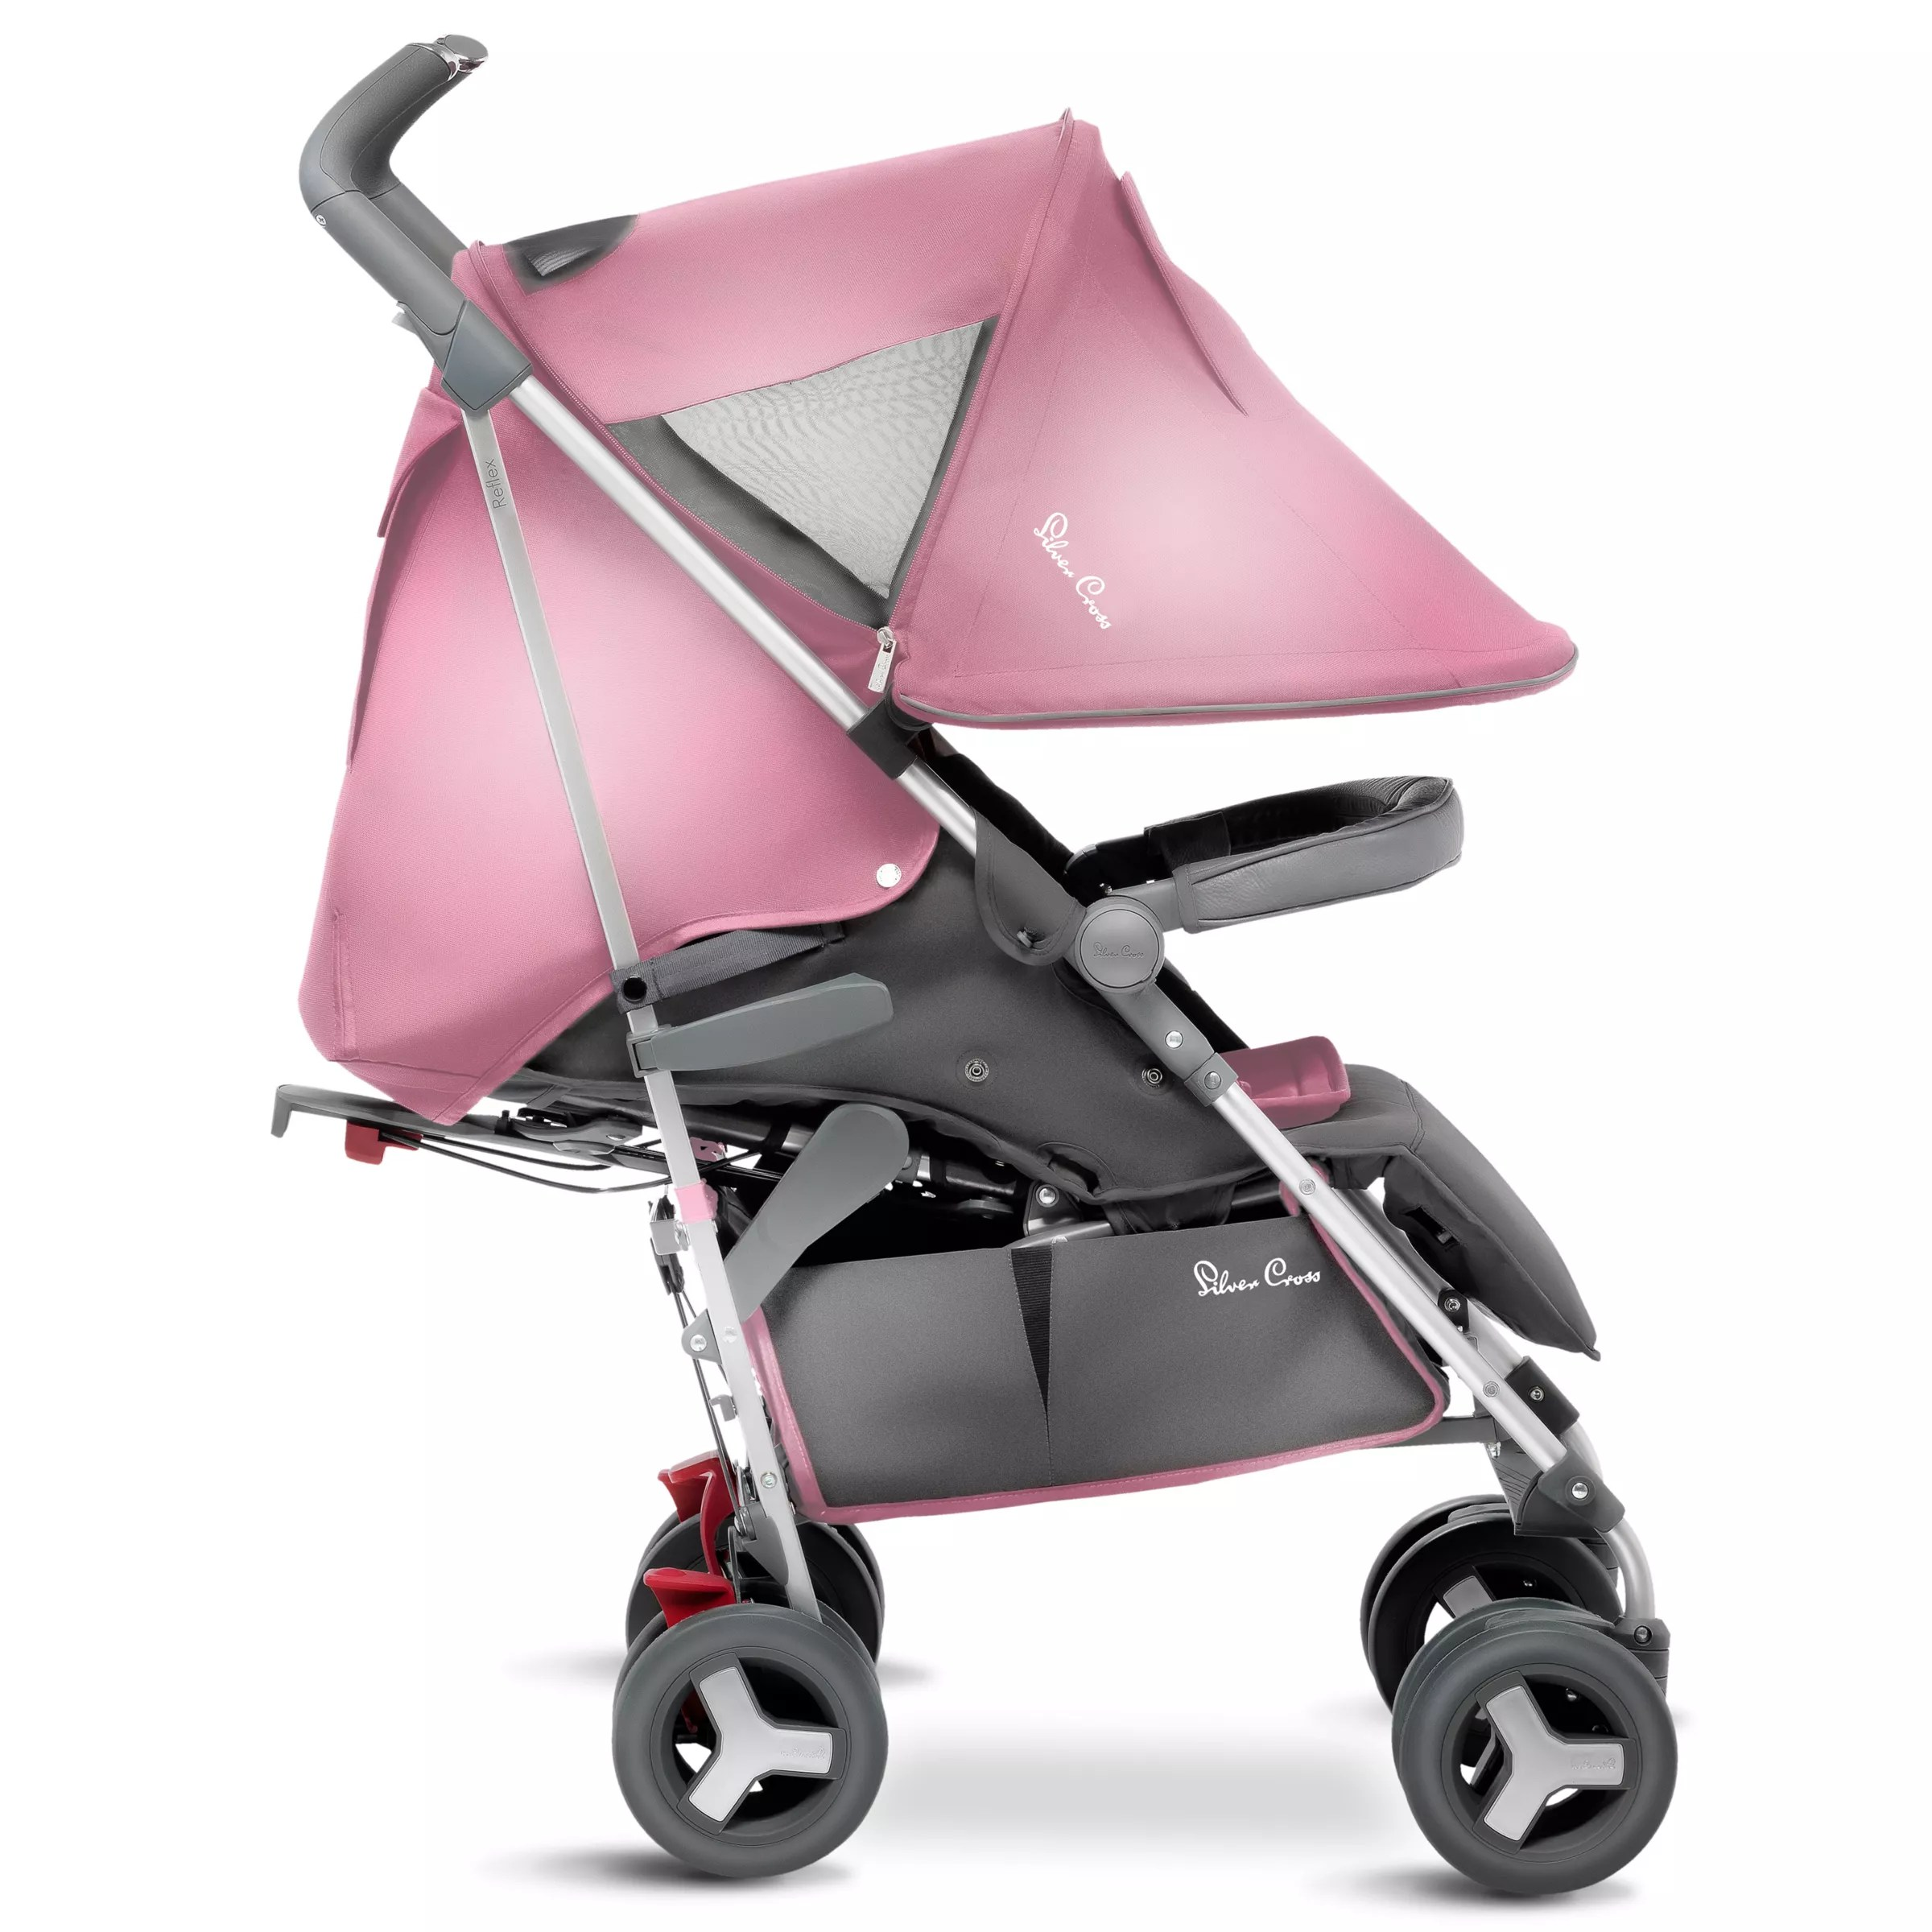 Toddler Pushchair Up To 25kg Silver Cross Reflex Pushchair Vintage Pink At John Lewis